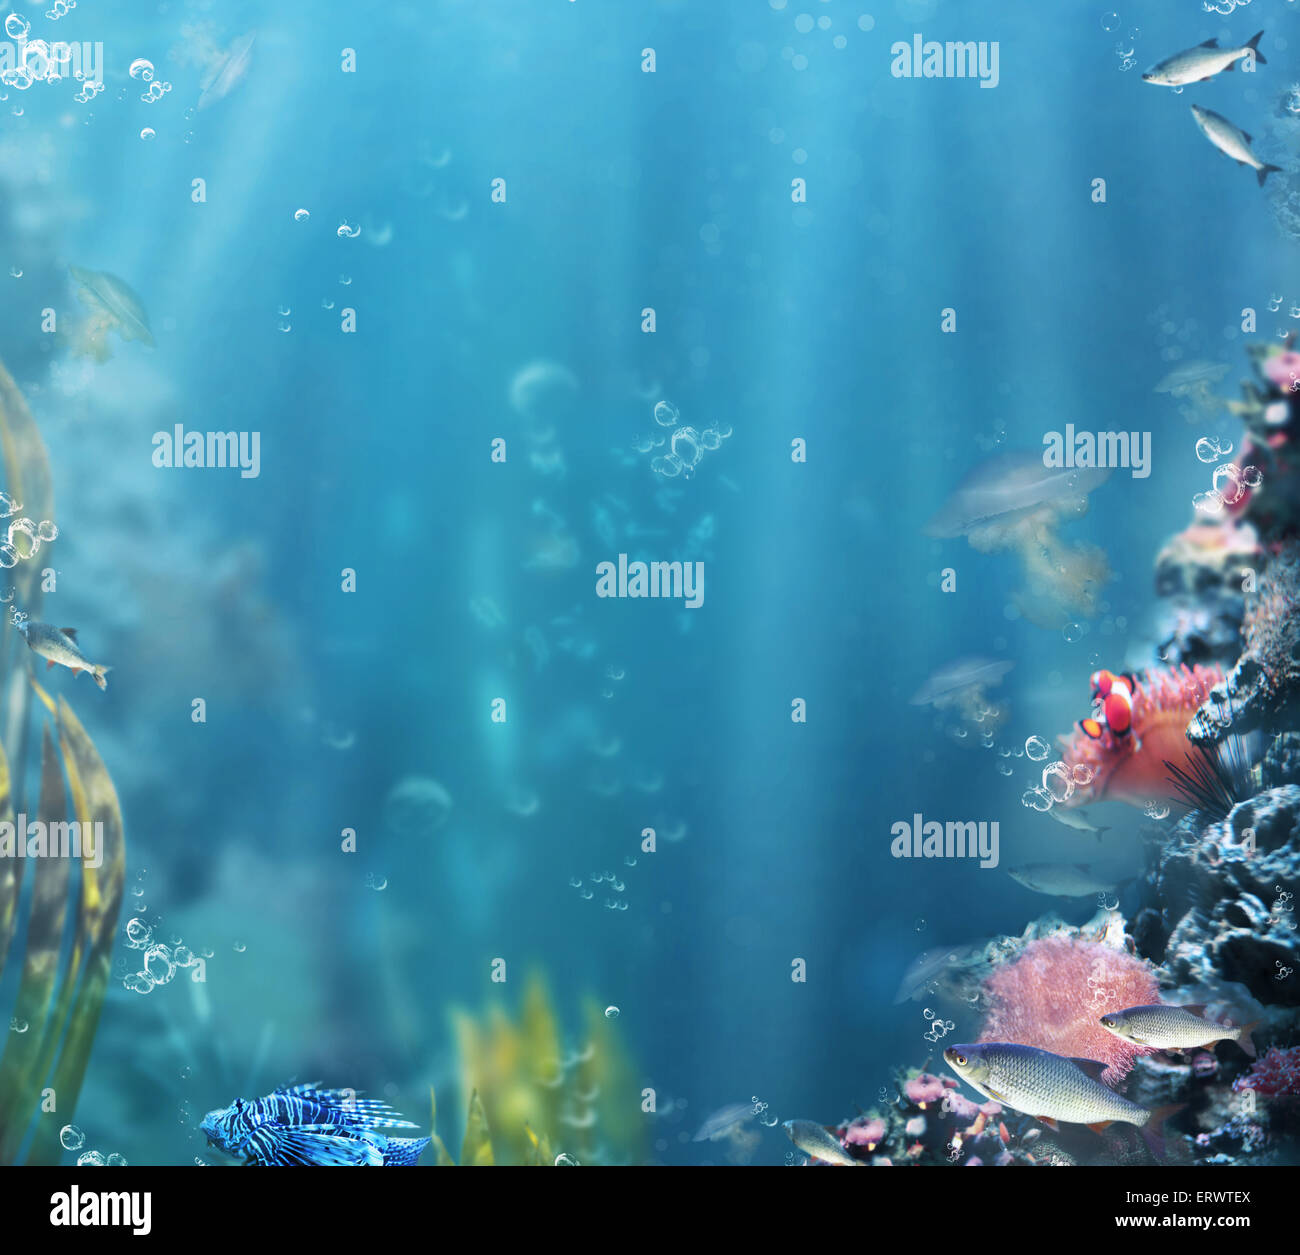 Marine. Sea Life. Aquarium with Fishes and Corals - Stock Image